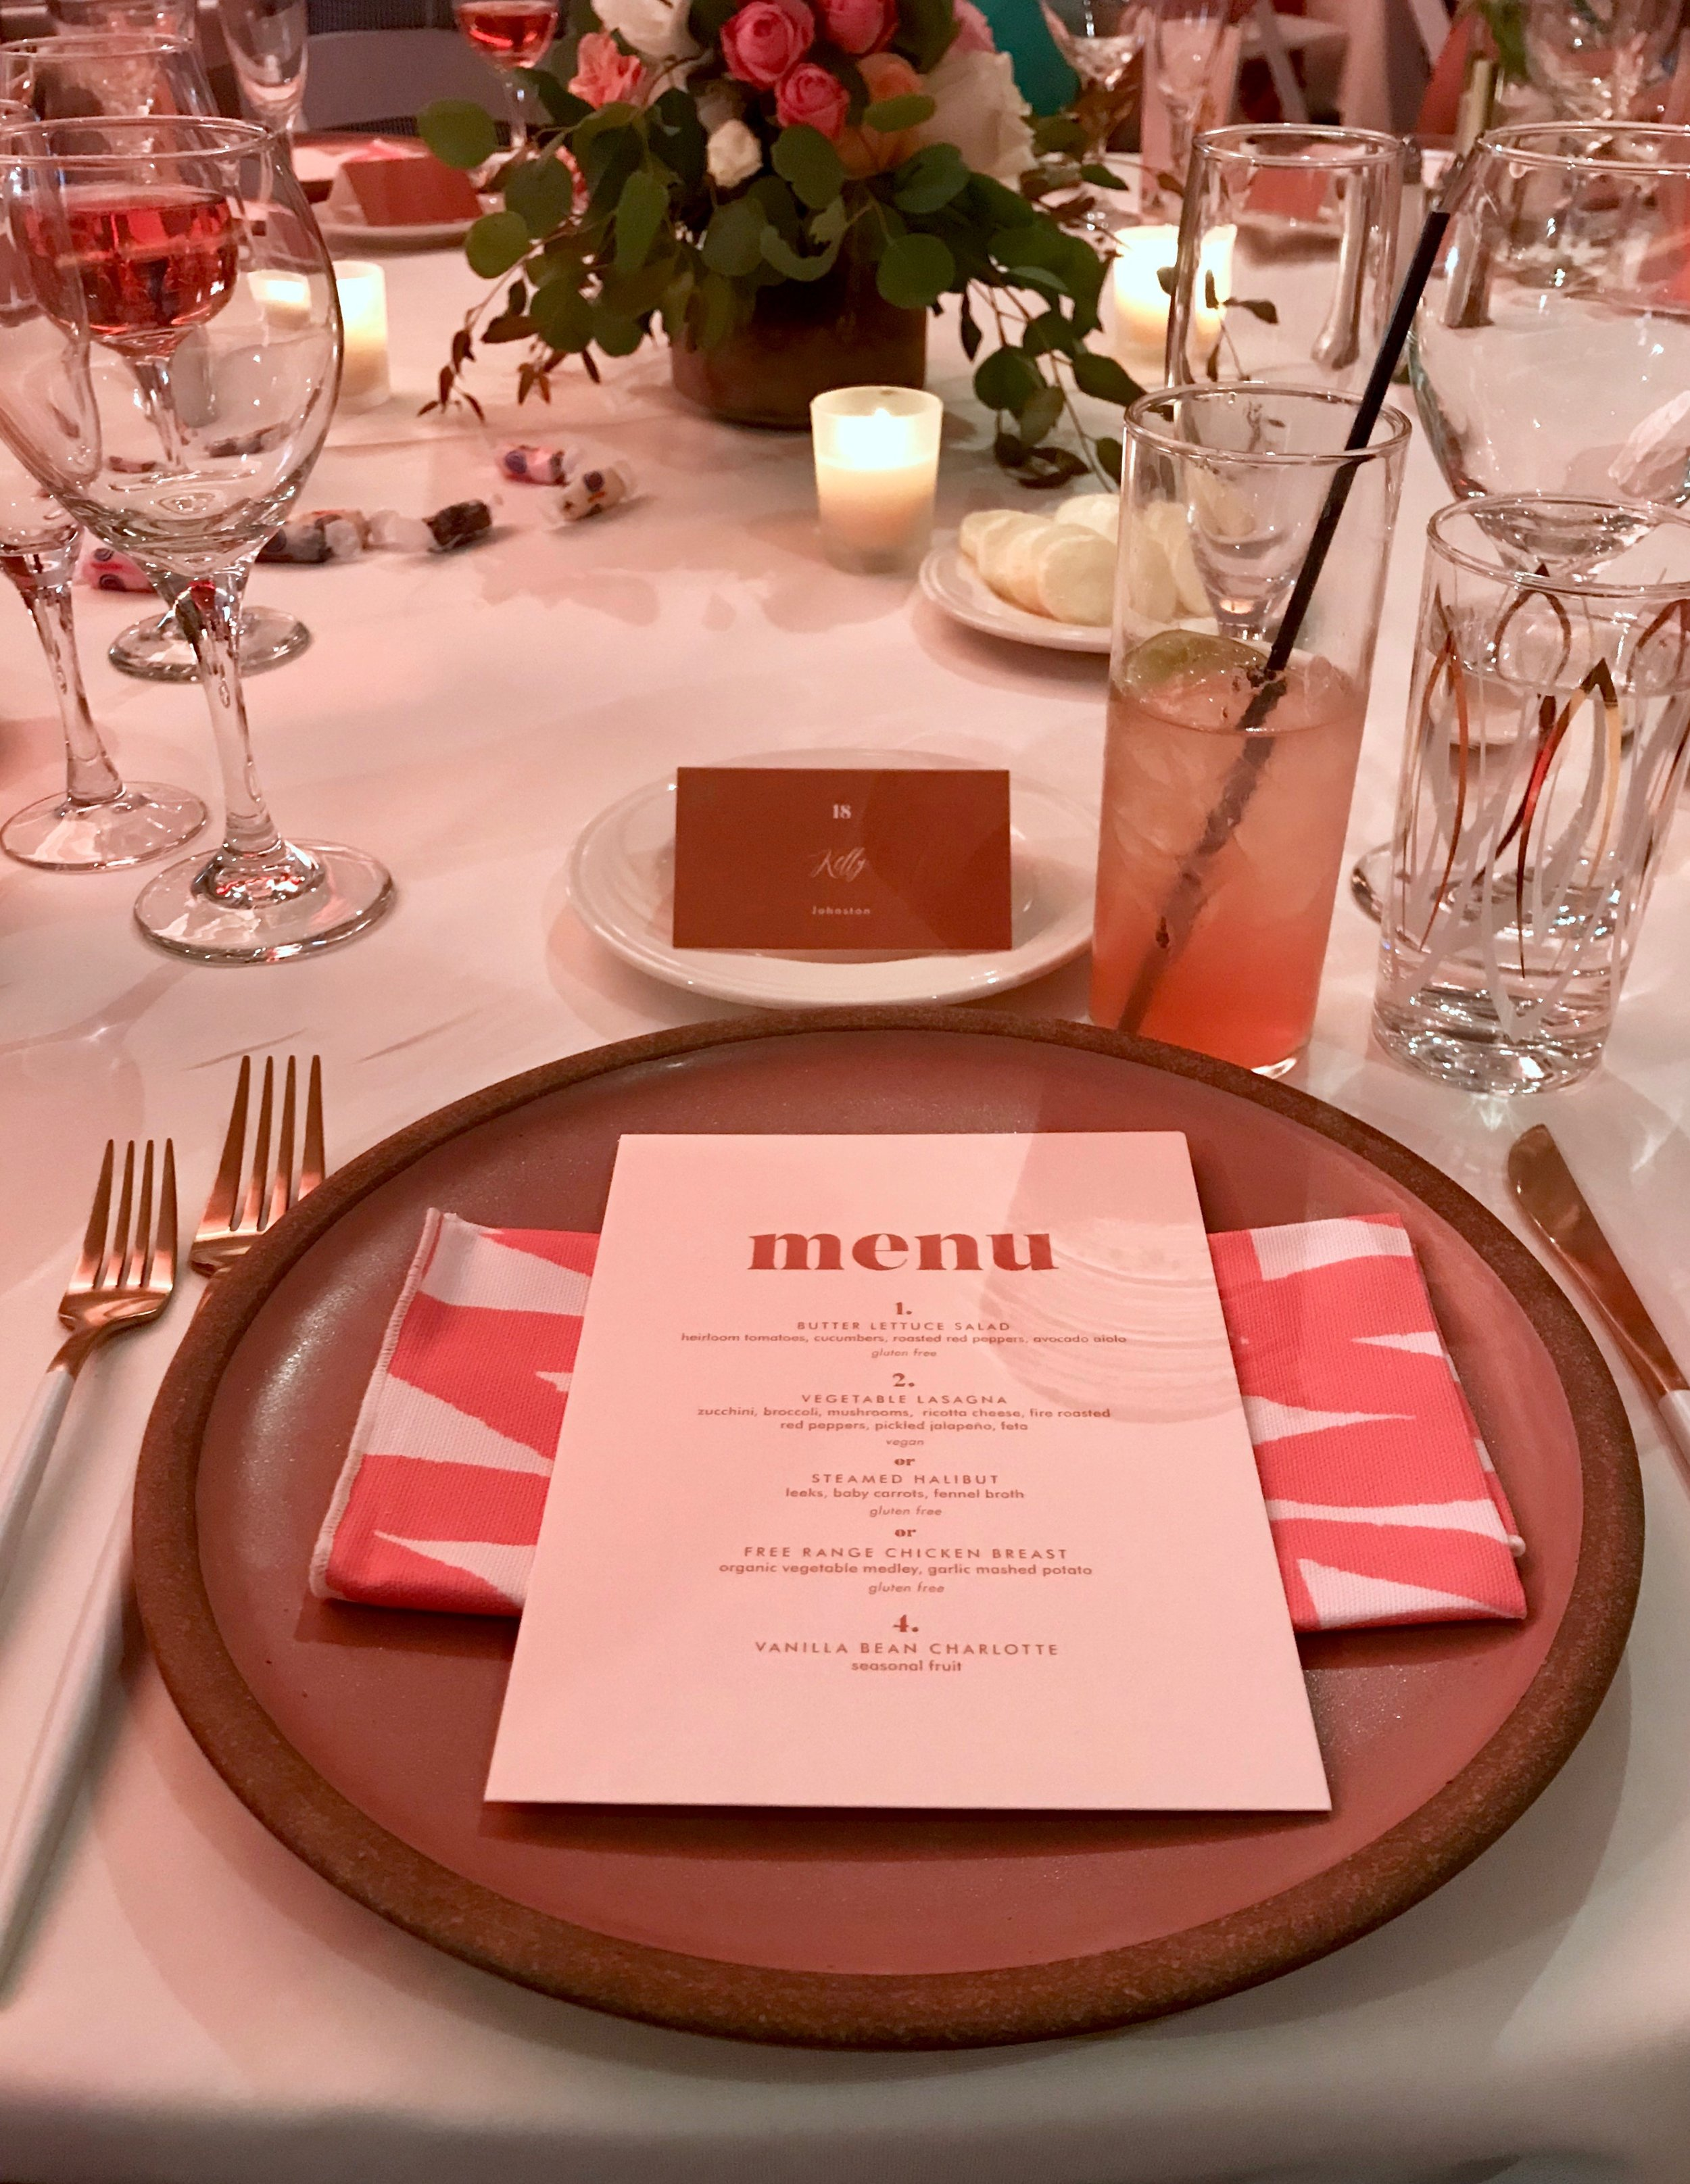 The beautiful place settings at the awards ceremony dinner - we all loved the Minted napkins!